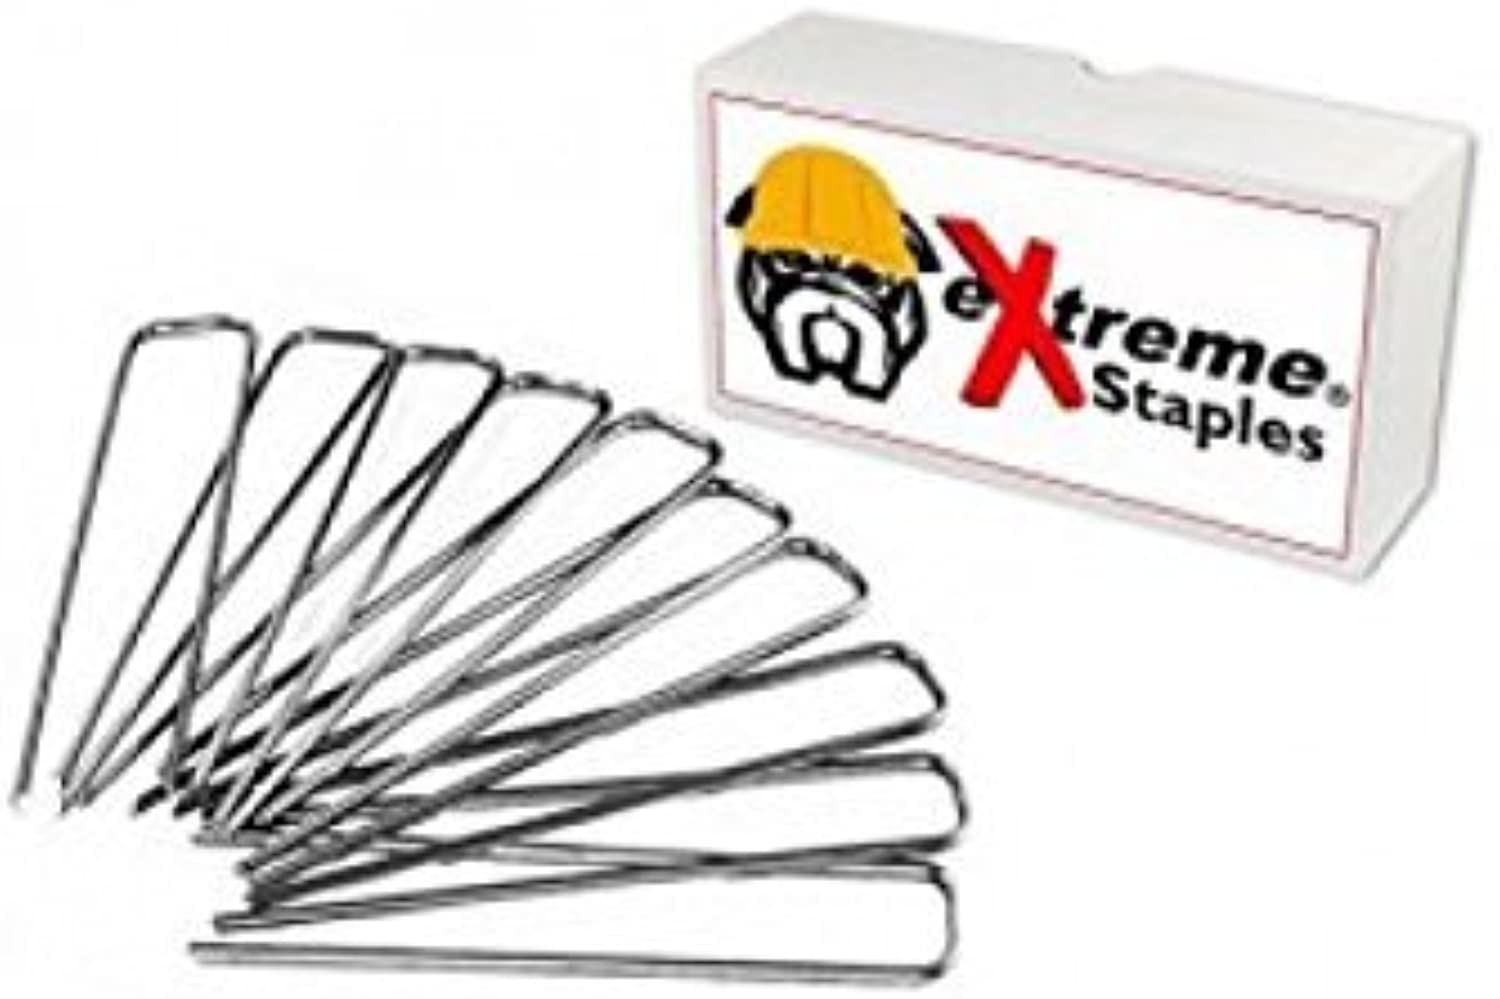 Extreme Dog Fence Pet Fence Staples for Electric Dog Fences and Sod or Garden  Multiple Quantities Available